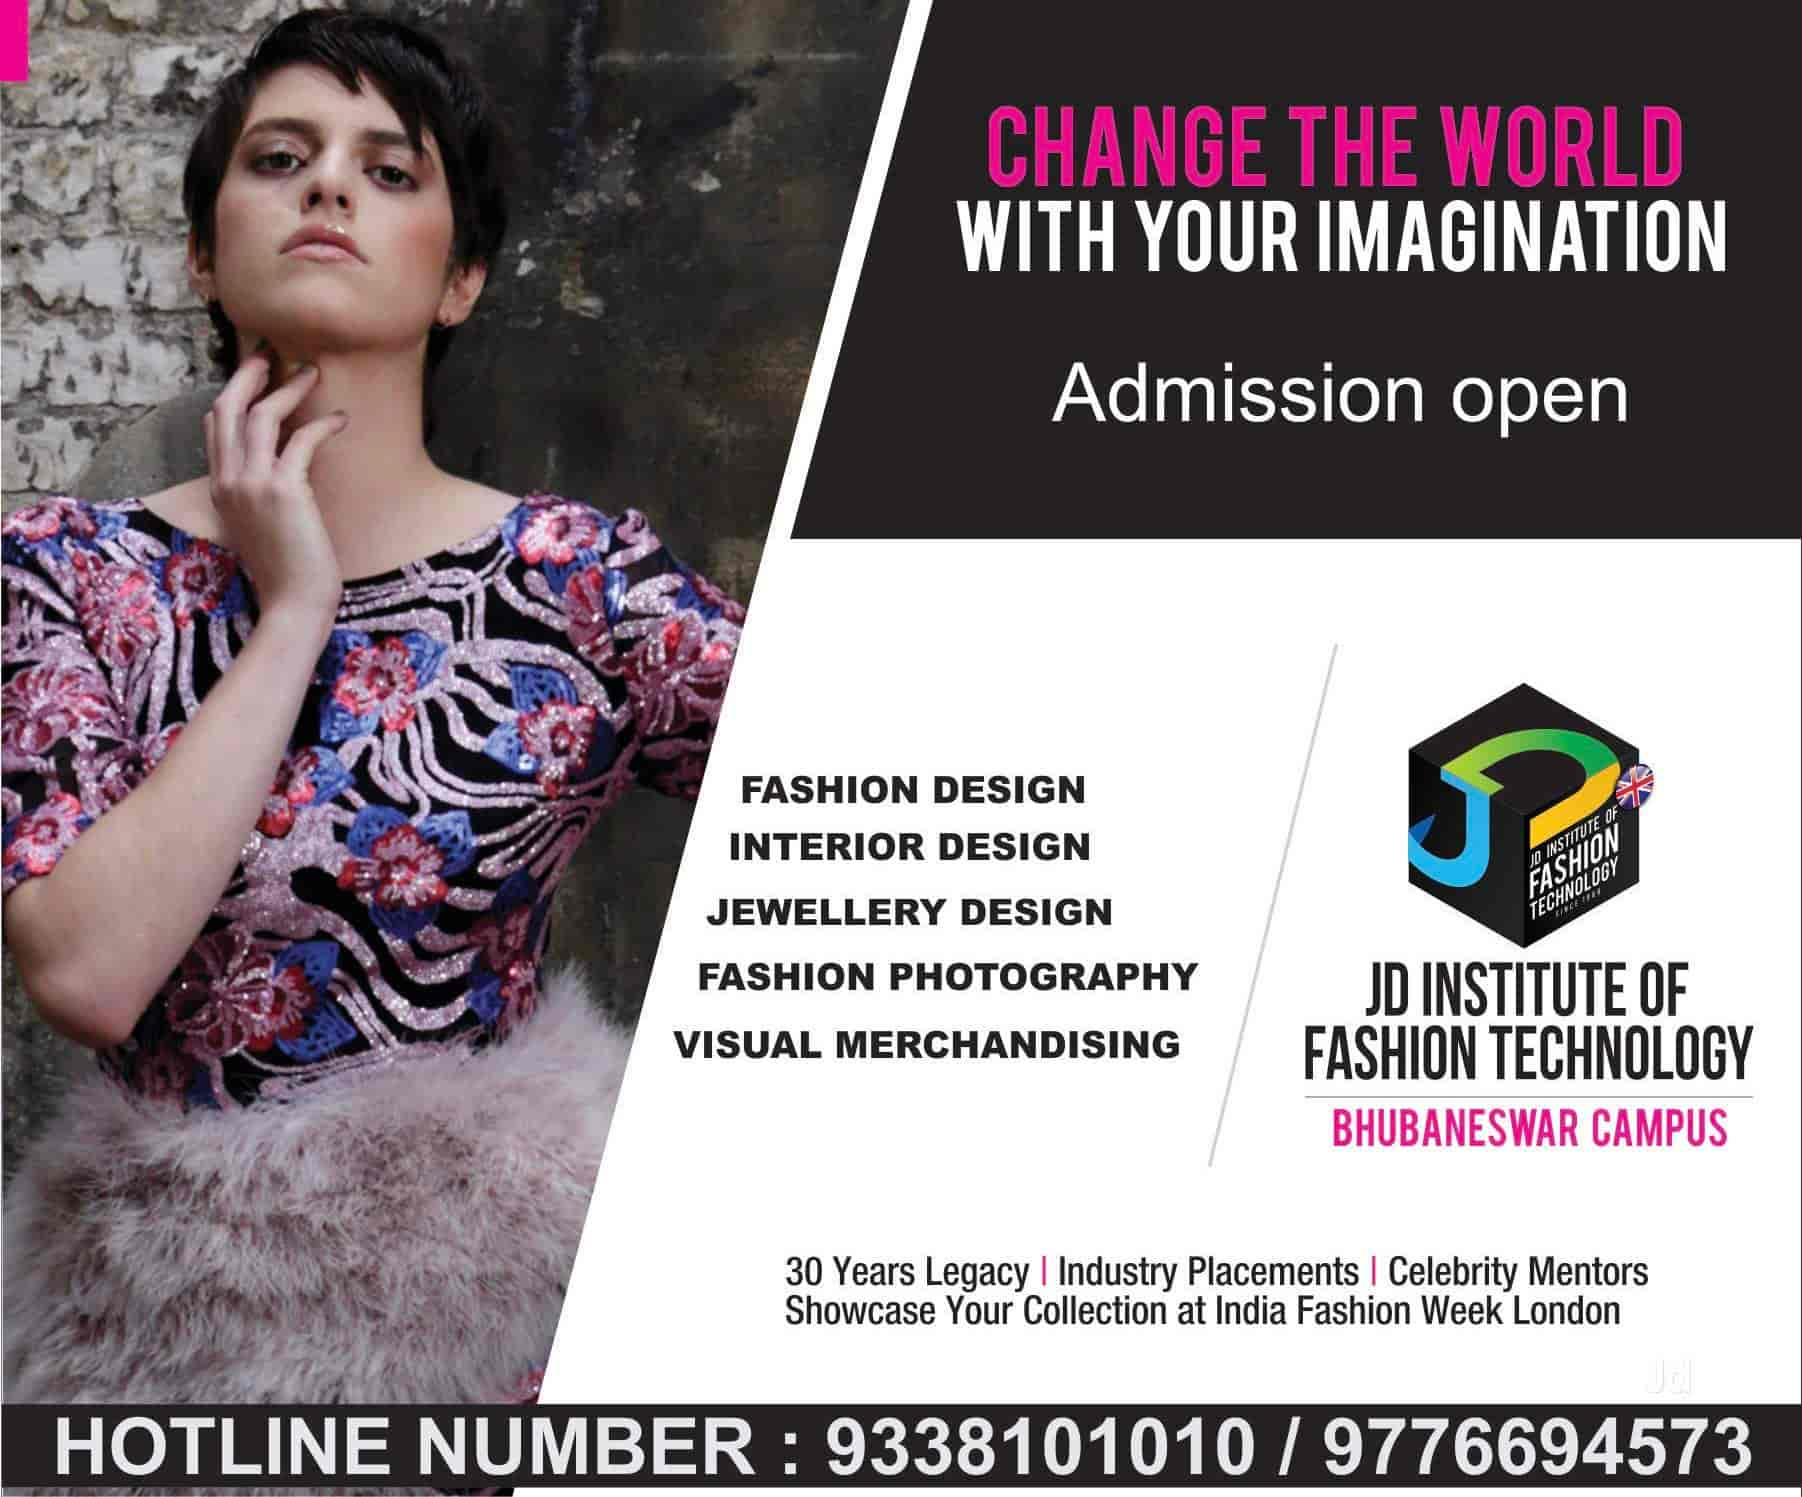 Jd Institute Of Fashion Technology Sahid Nagar Interior Designers In Bhubaneshwar Justdial